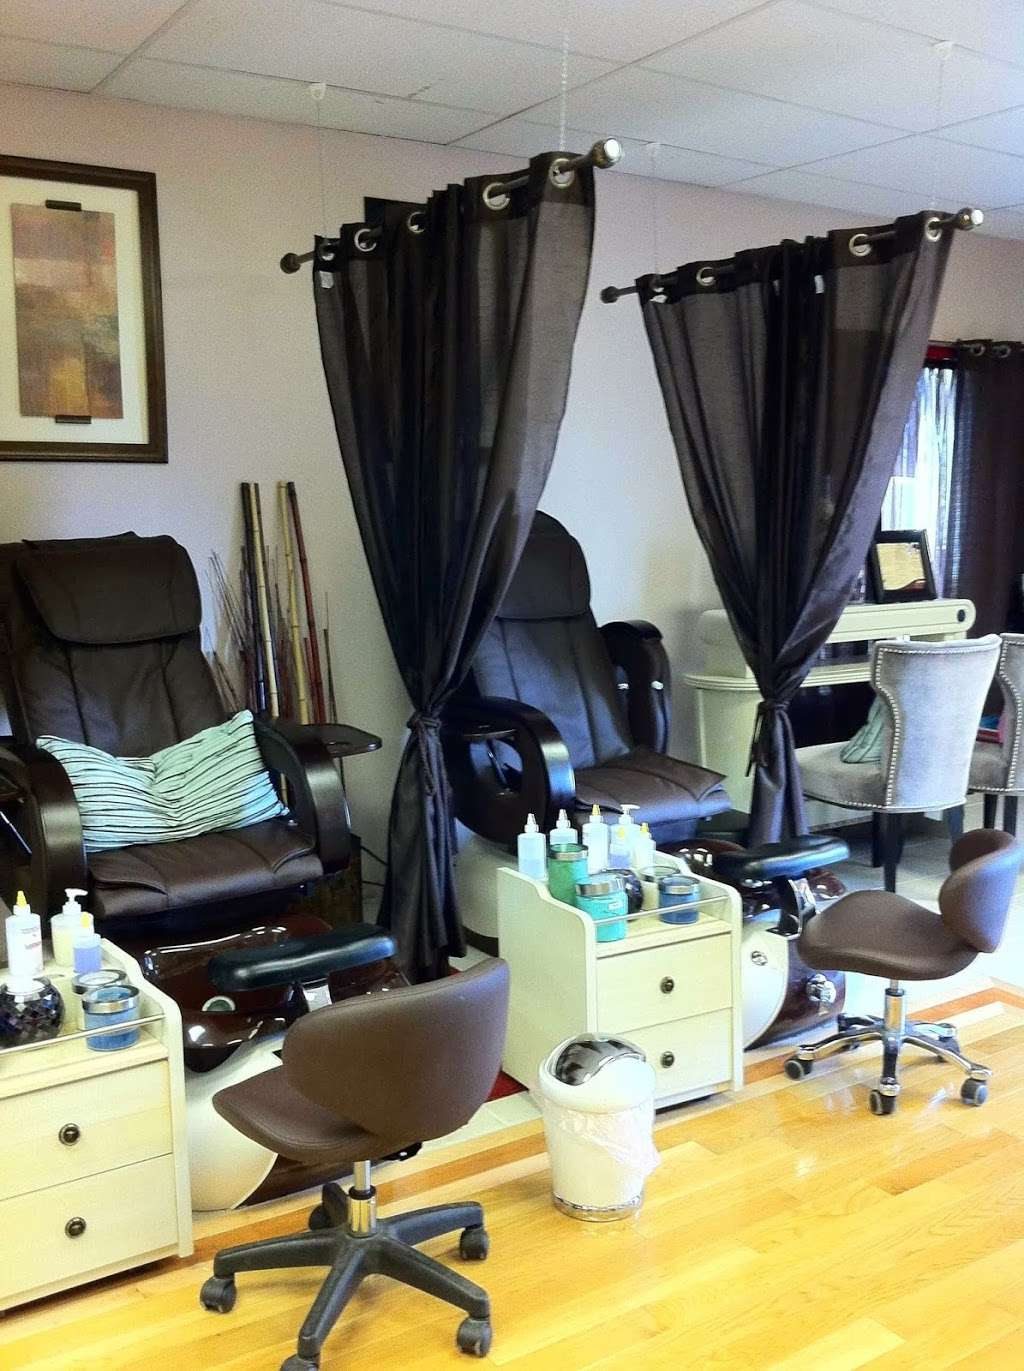 Luxury Nail Spa & Salon - hair care  | Photo 7 of 9 | Address: 1 Andover St, Peabody, MA 01960, USA | Phone: (978) 854-5472